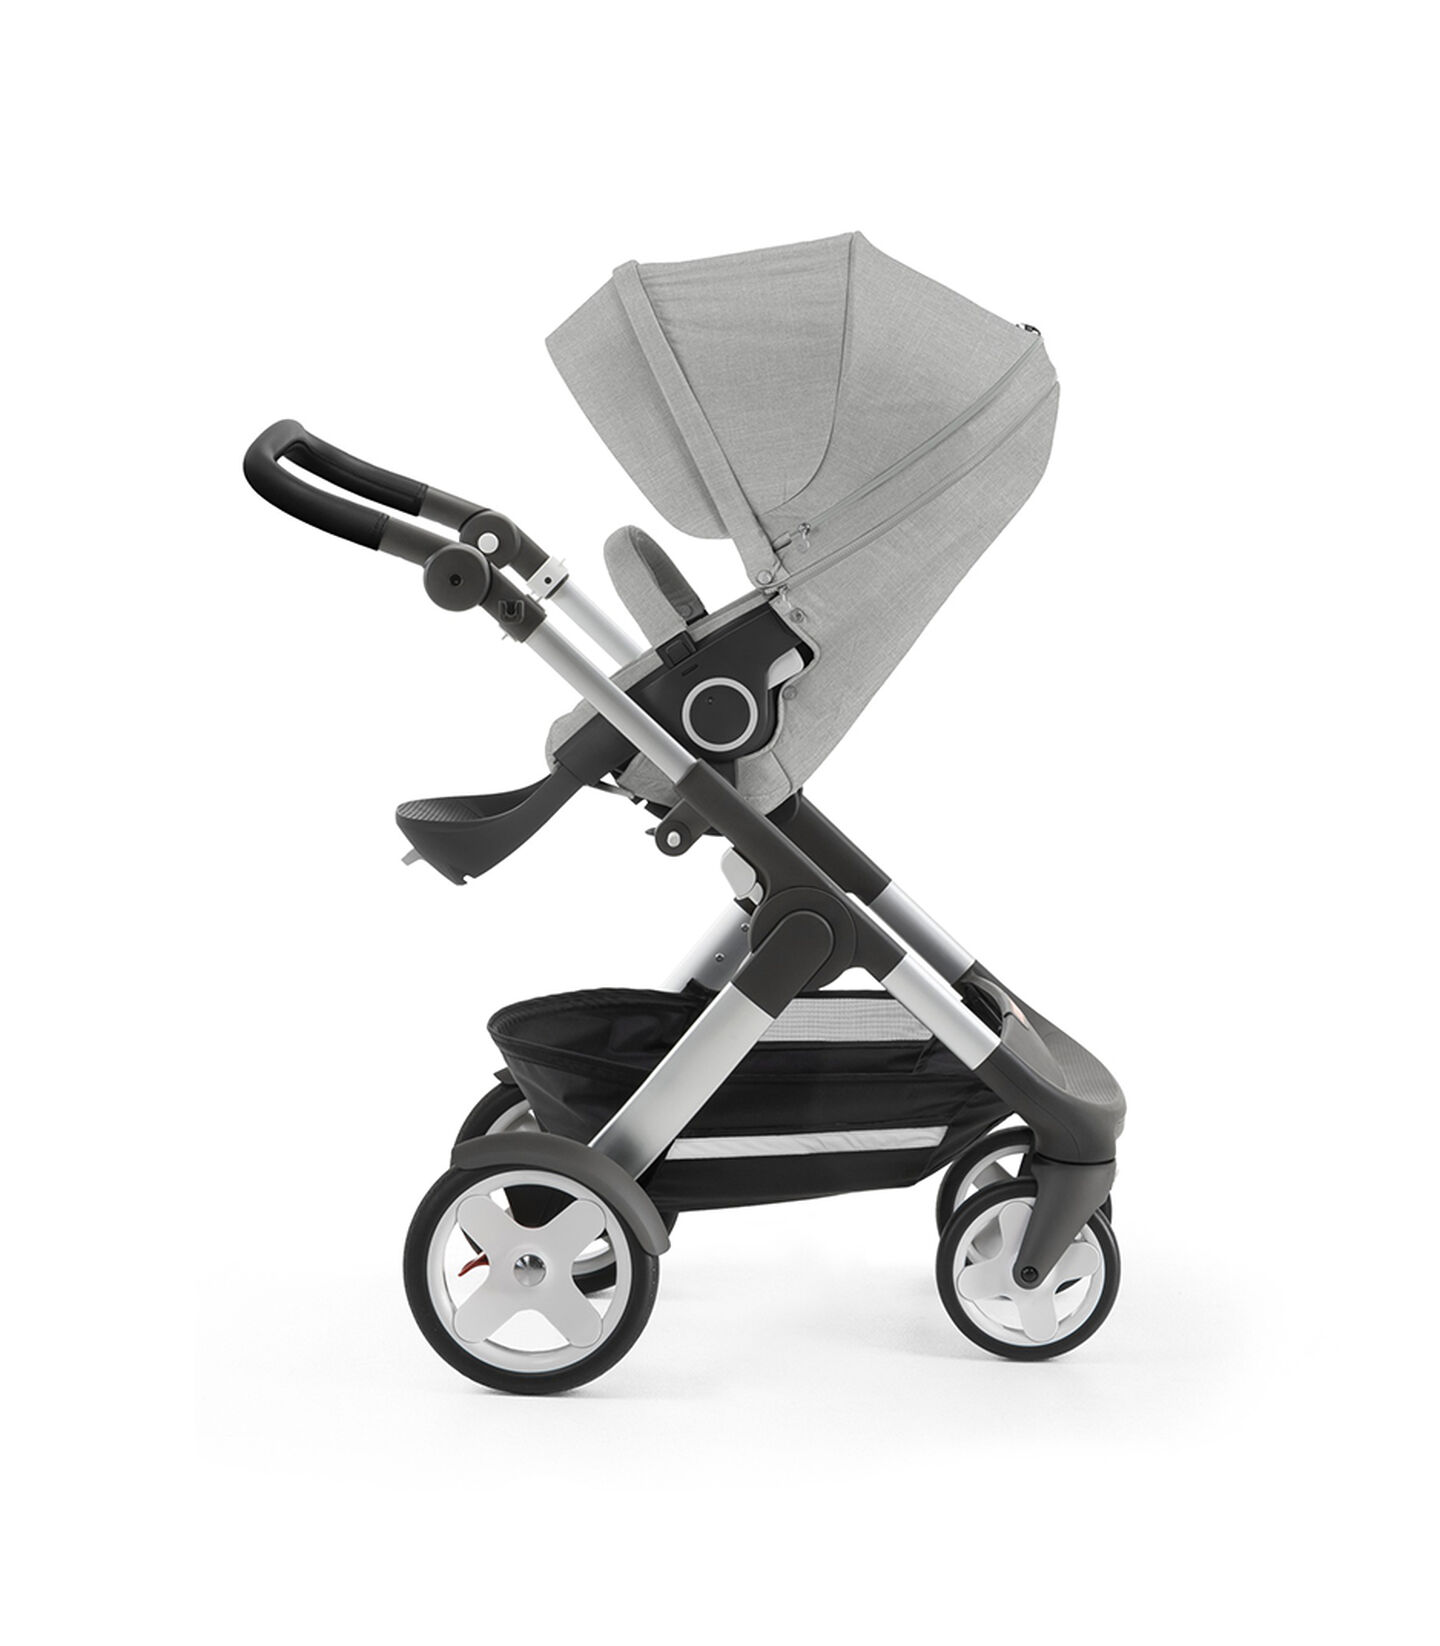 Stokke® Trailz™ with silver chassis and Stokke® Stroller Seat, Grey Melange. Classic Wheels. view 2